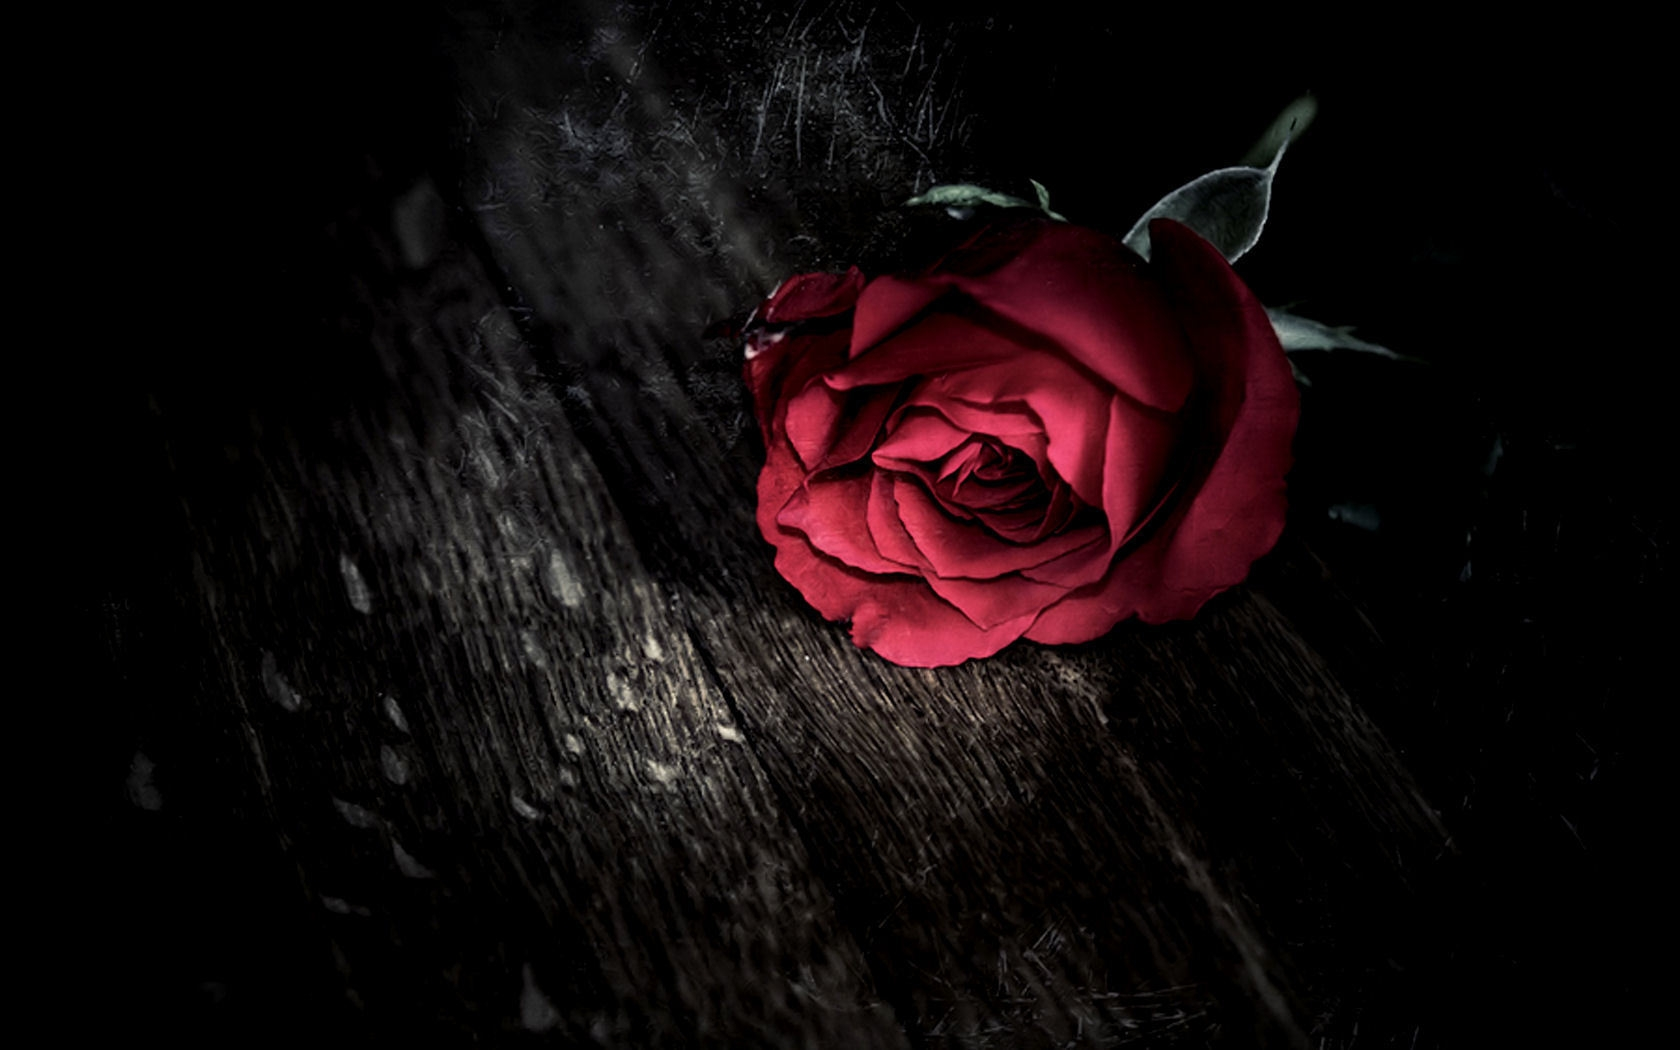 cool-rose-HD-Download-cool-rose-Download-cool-rose-HD-Download-wallpaper-wp3404198